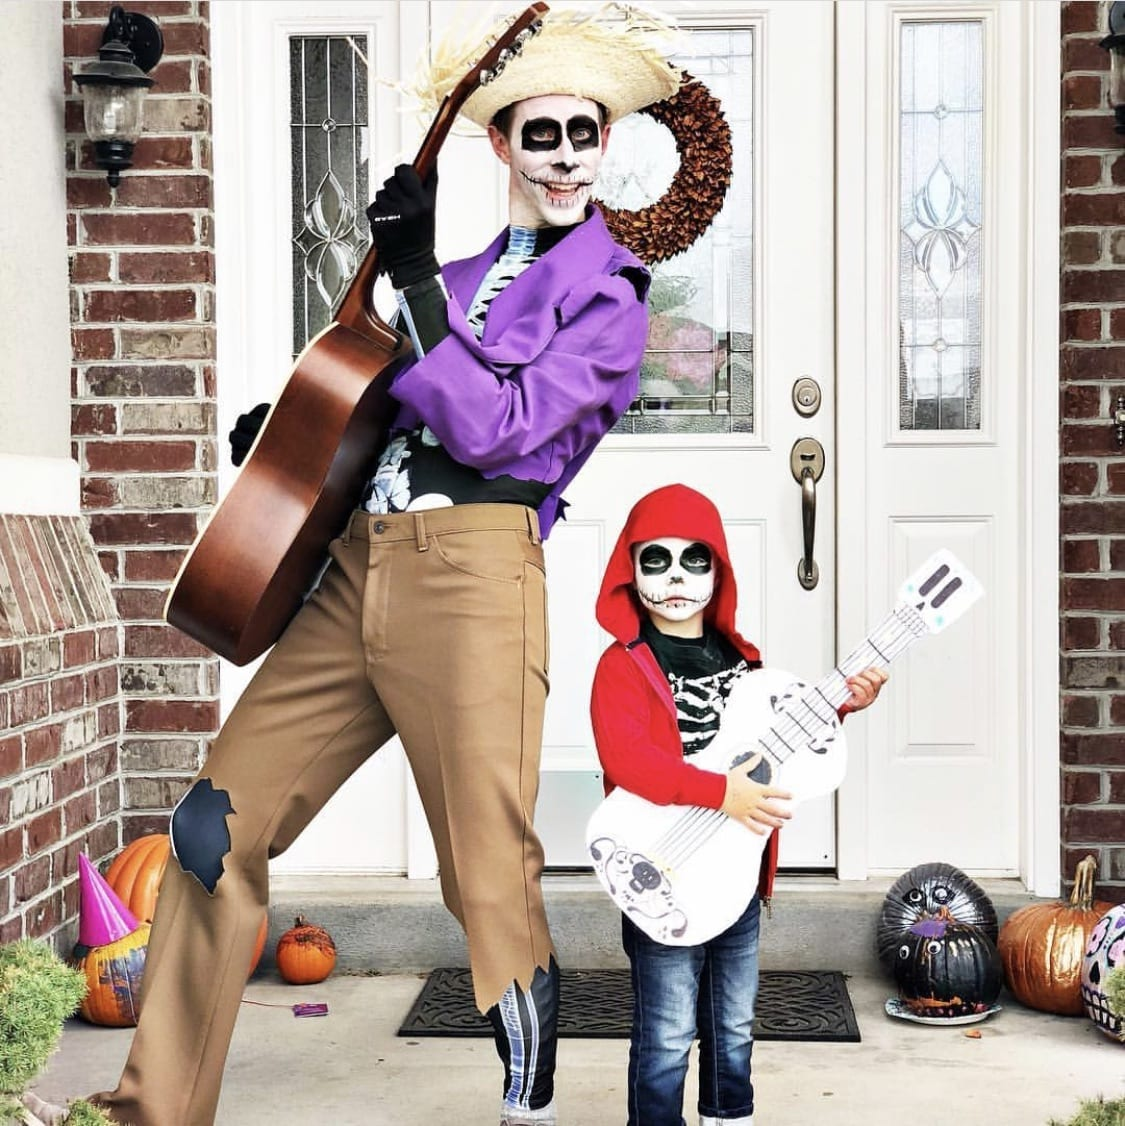 Family dressed up as the characters from Coco for Halloween.